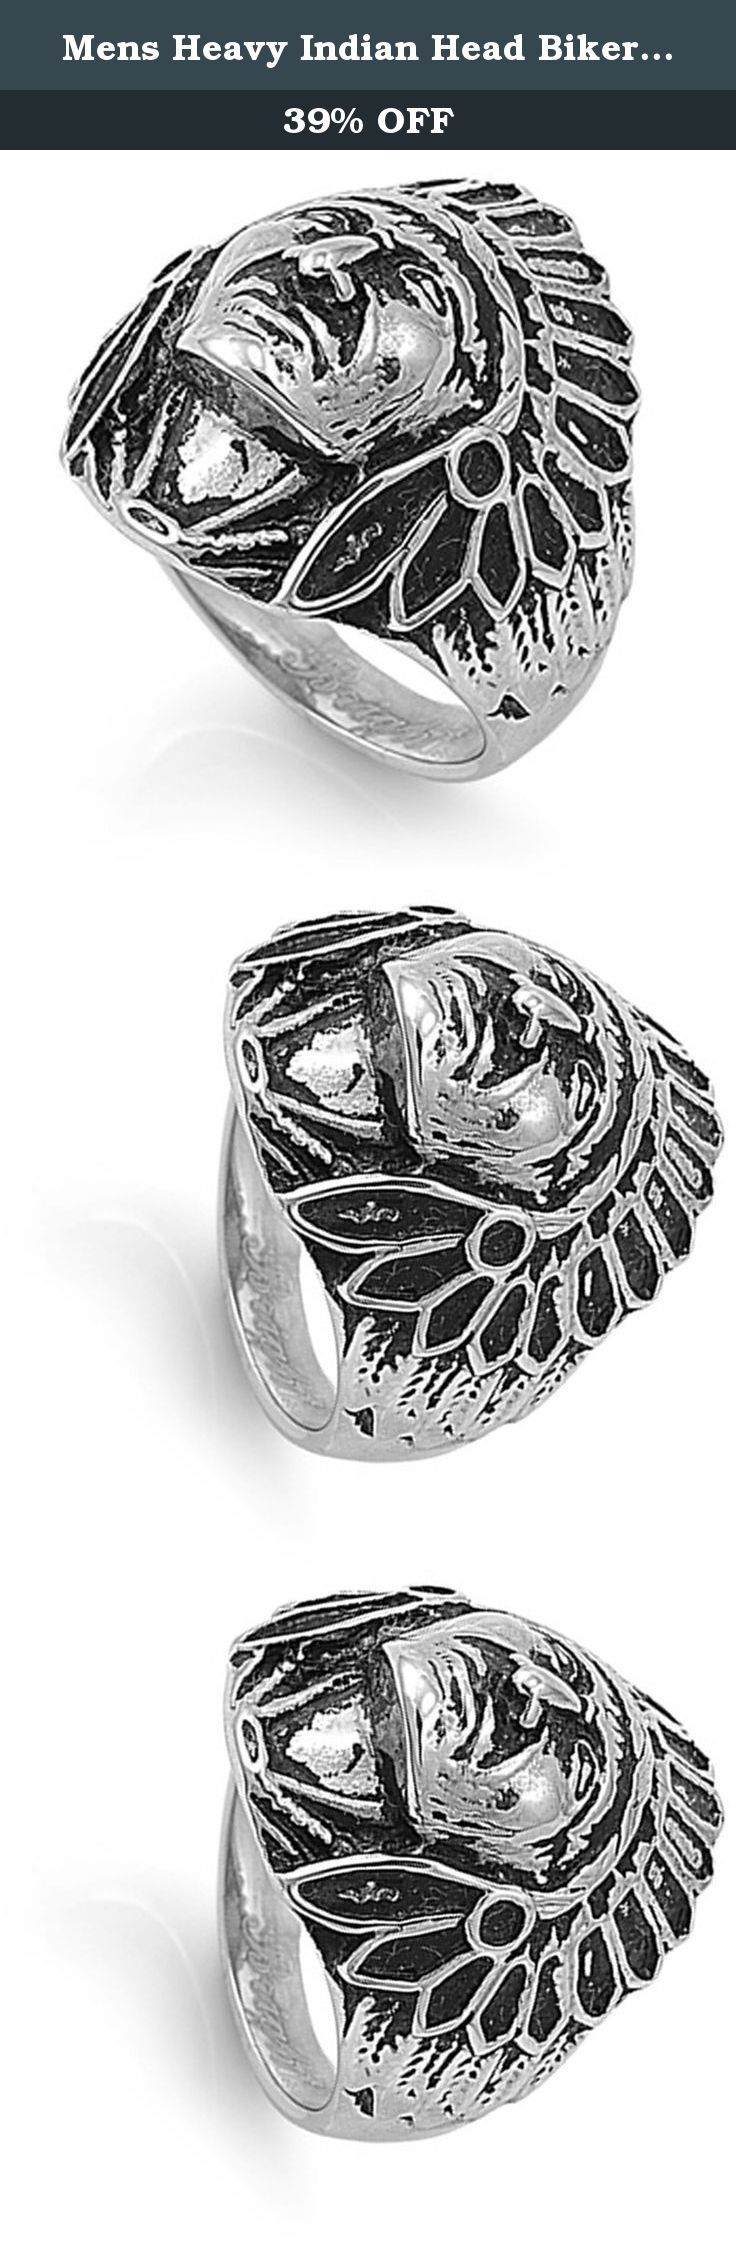 """Mens Heavy Indian Head Biker Ring Polished Stainless Steel Band 26mm Size 15 (STL40364-15). All our stainless steel jewelry is crafted from the finest 316L grade stainless steel, referred to by the medical community as surgical steel, that provides a flawless finish guaranteed to stand the test of time. Our """"comfort fit"""" jewelry is designed using the latest laser technology to ensure precision cuts, smooth edges and quality finishes. We promise superior service which includes fast…"""